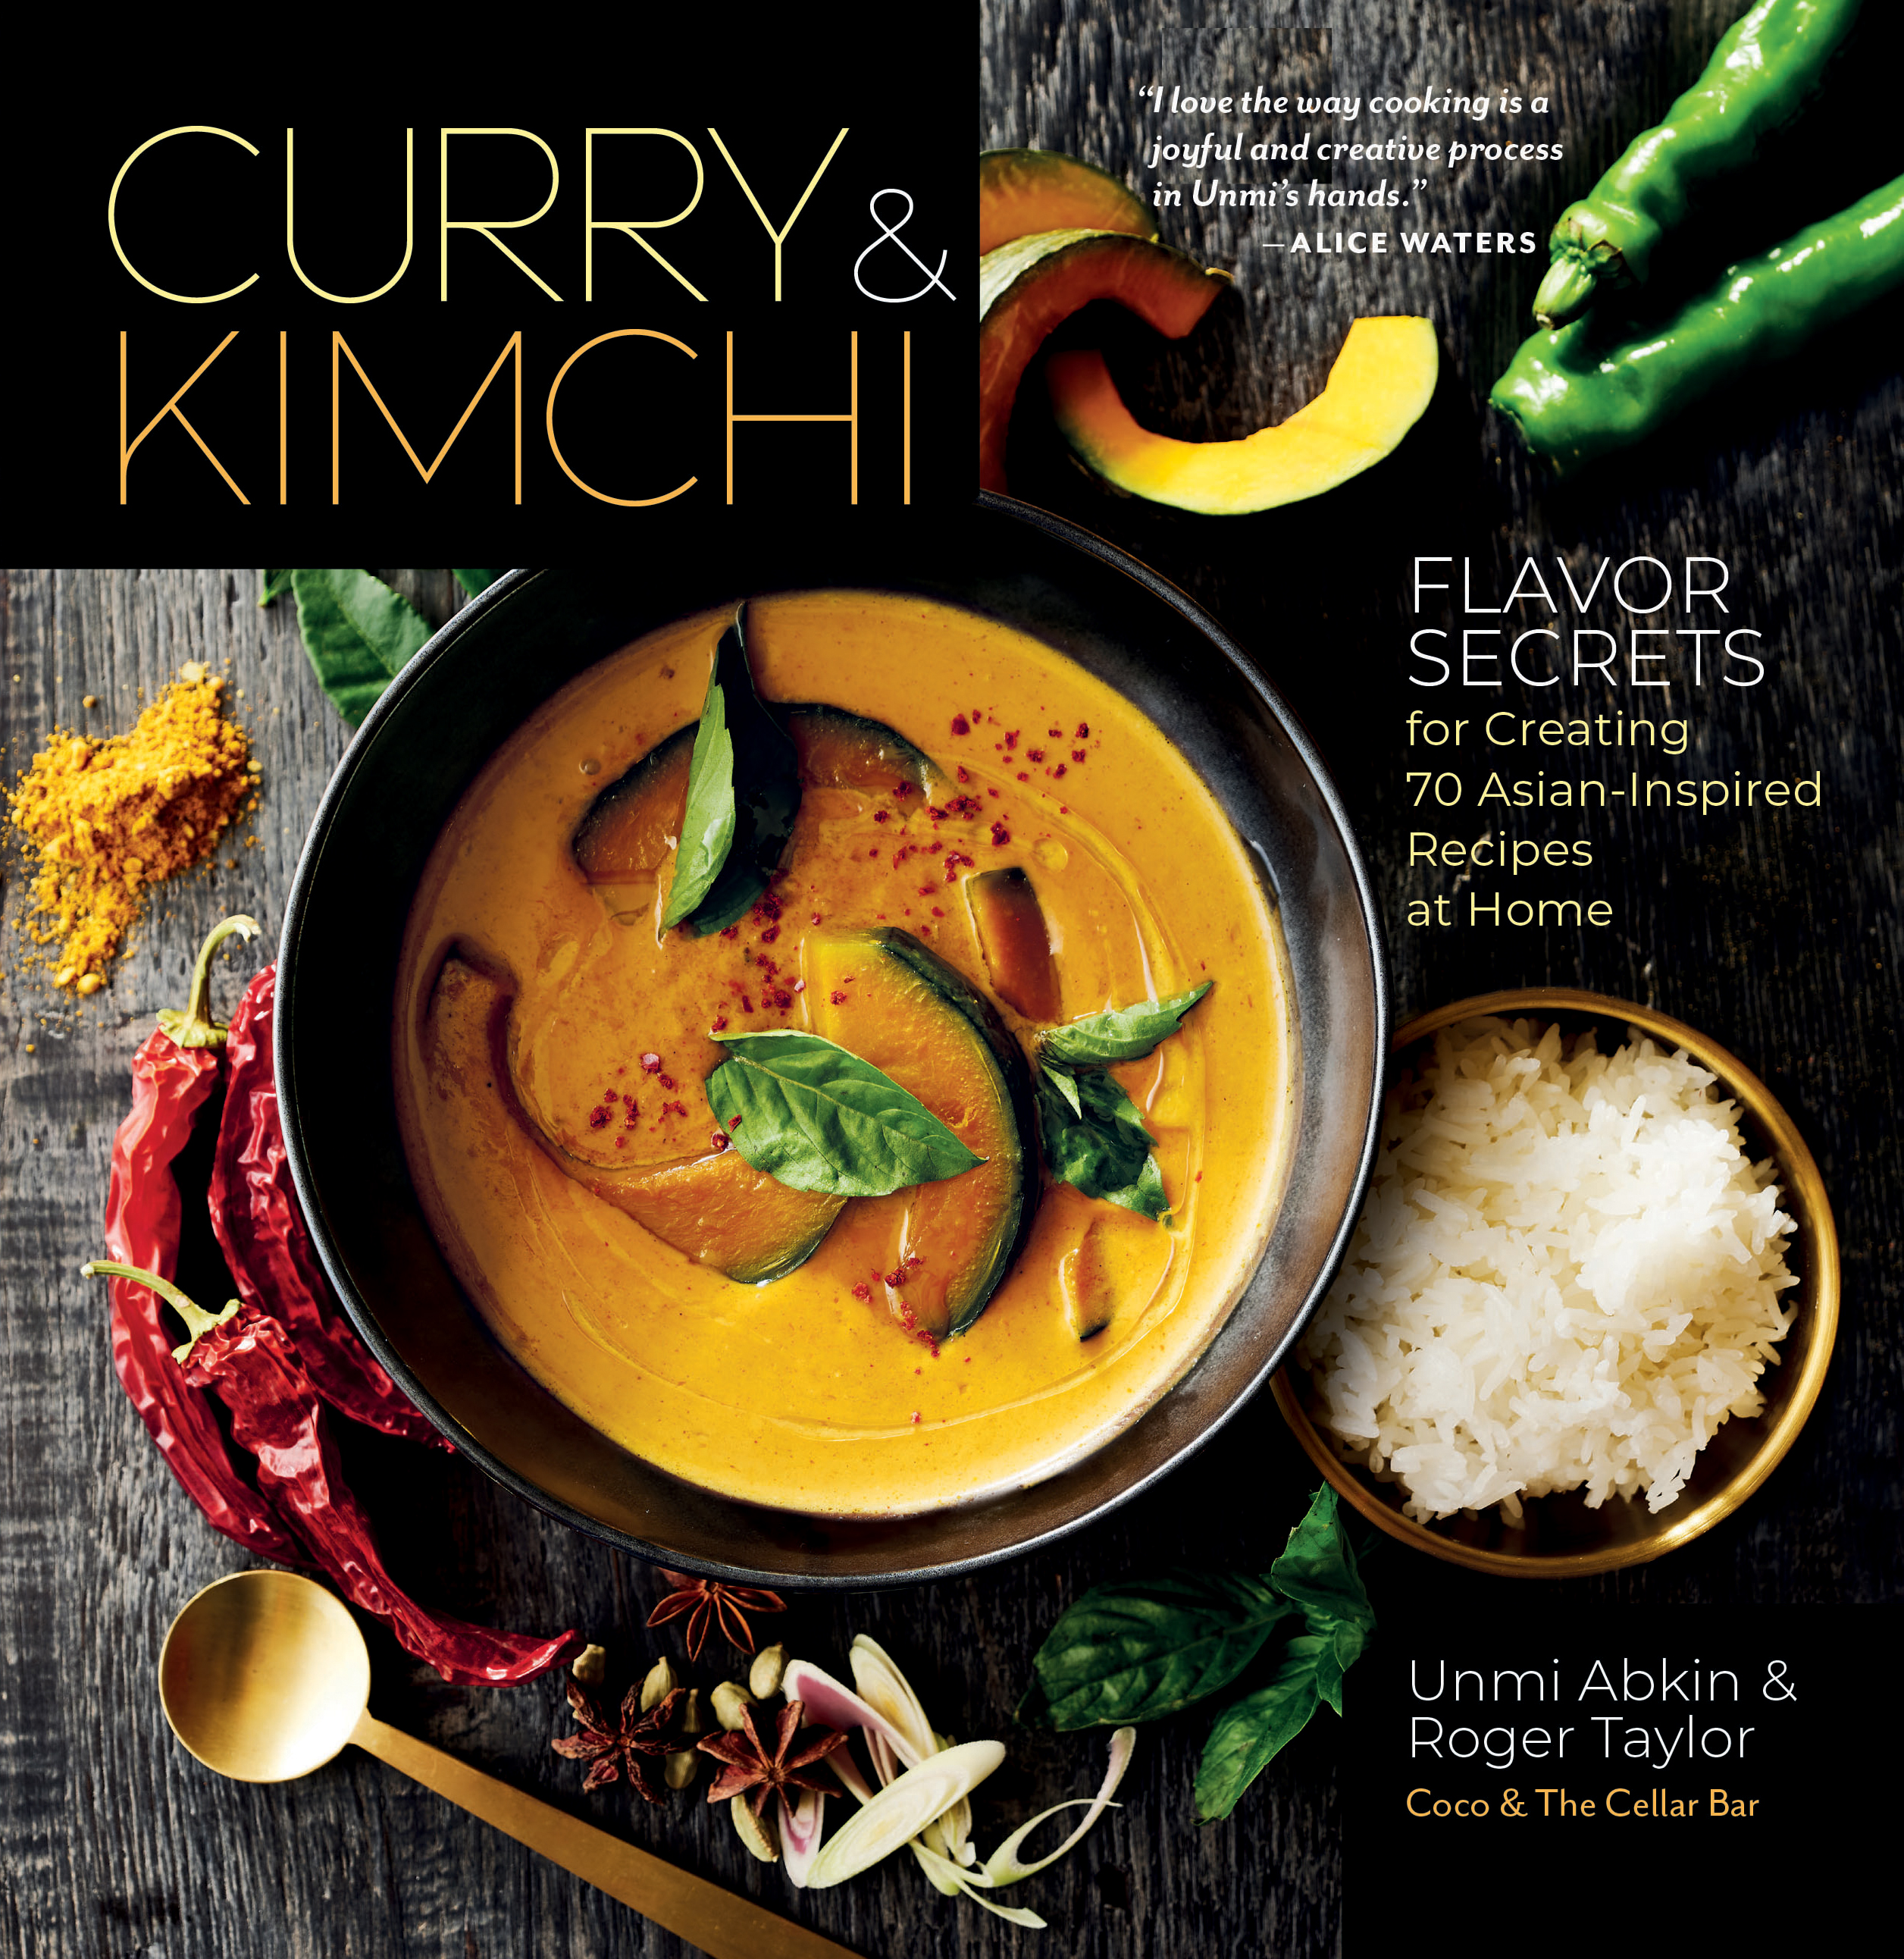 Curry & Kimchi Flavor Secrets for Creating 70 Asian-Inspired Recipes at Home - Unmi Abkin